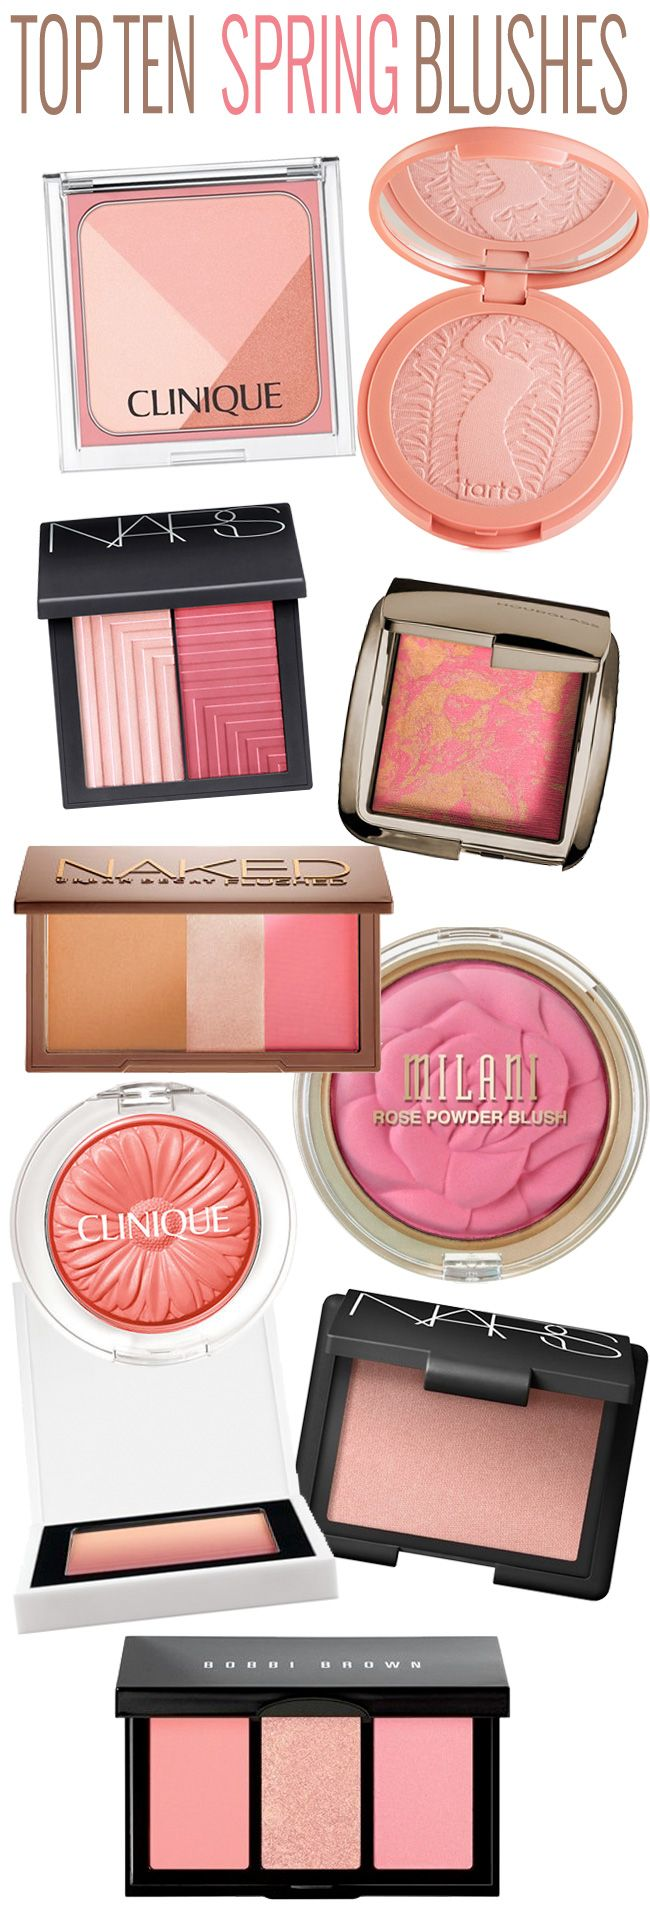 It is time to start lightening and brightening. Start with blush!